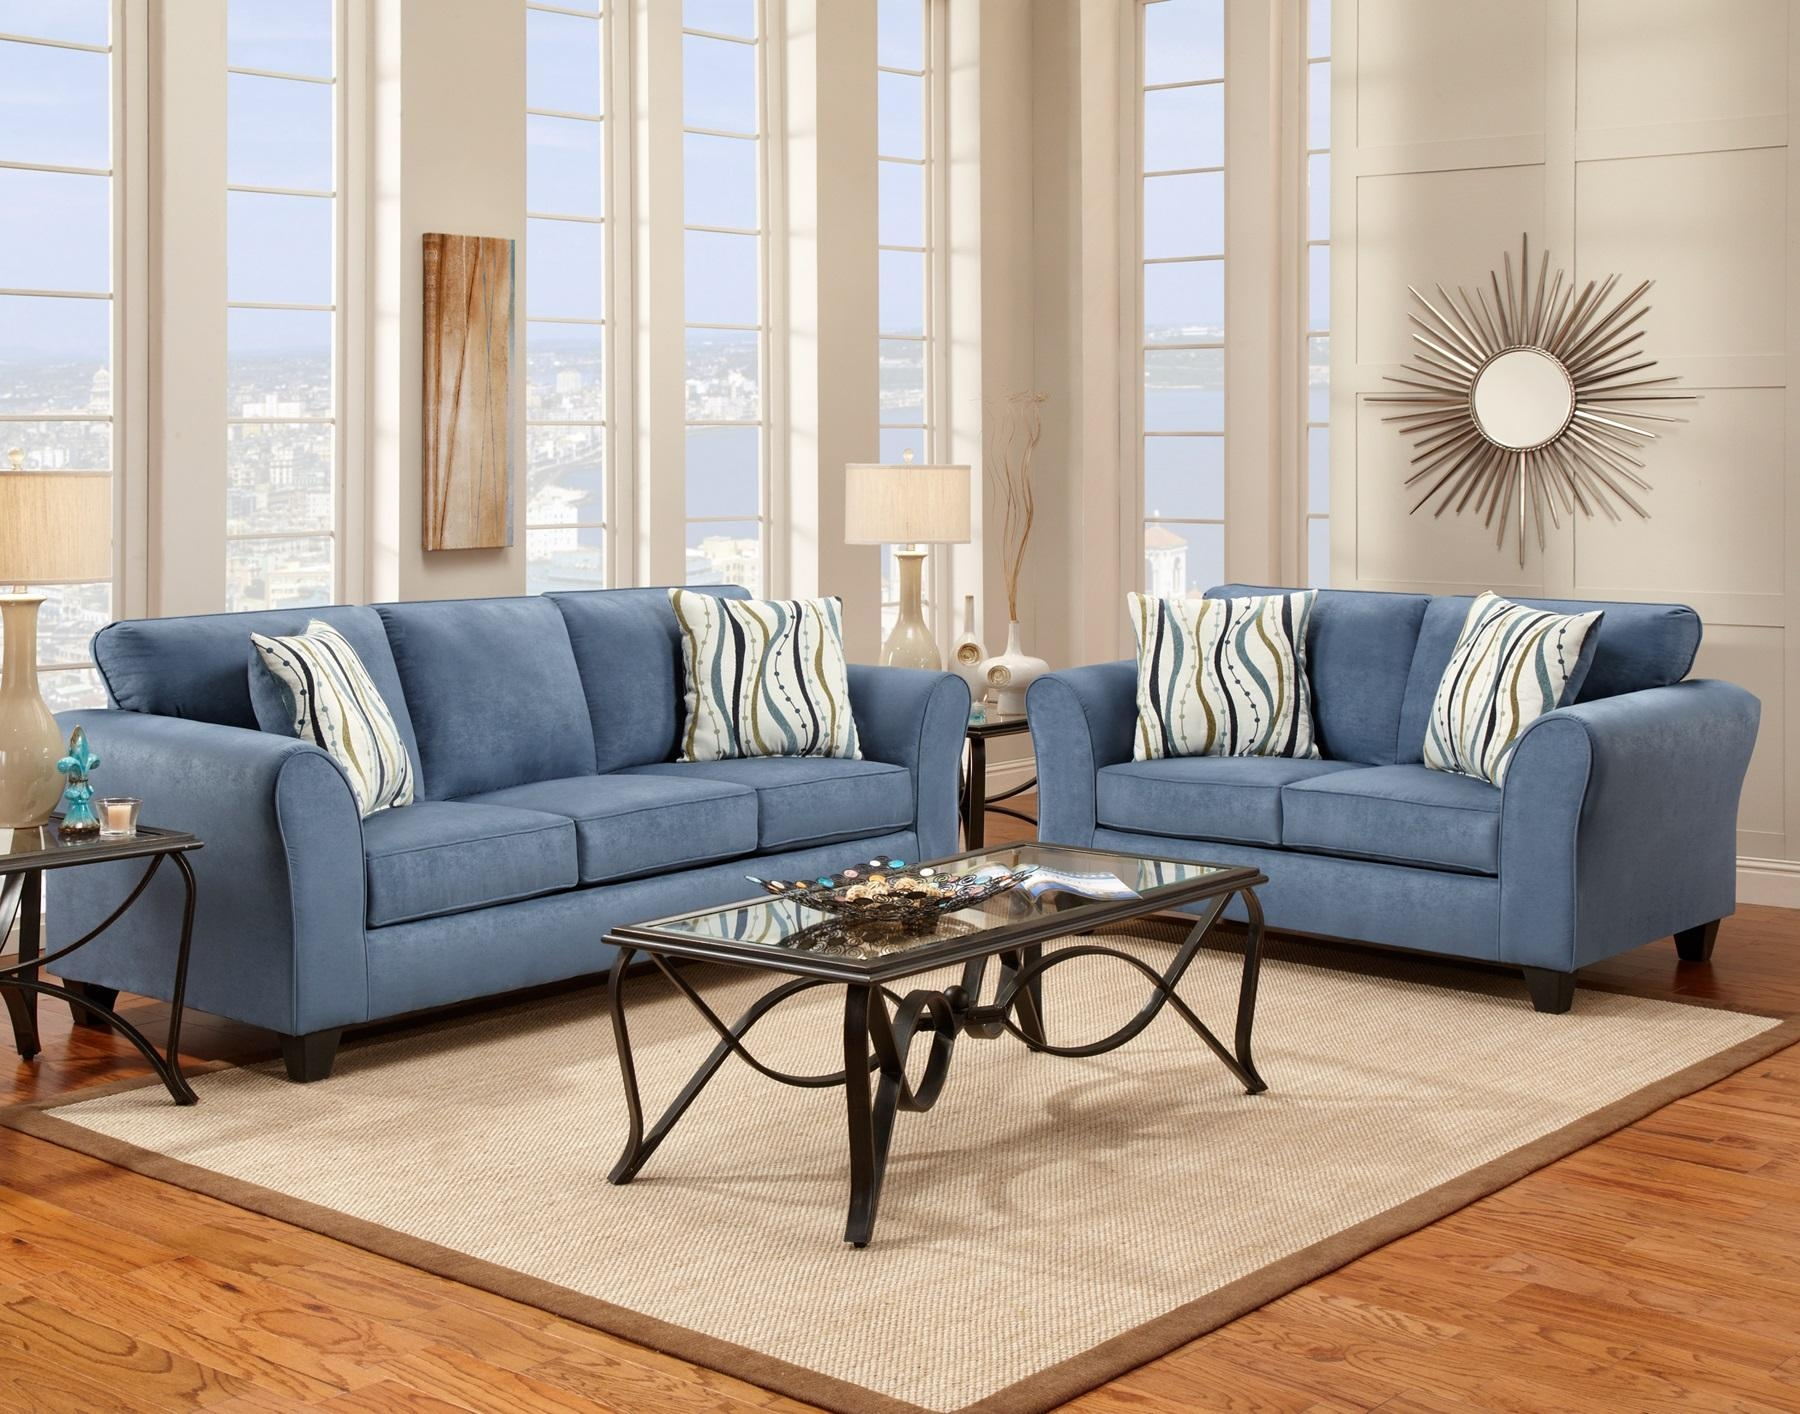 Roundhill Furniture Intended For Blue Microfiber Sofas (Image 12 of 20)